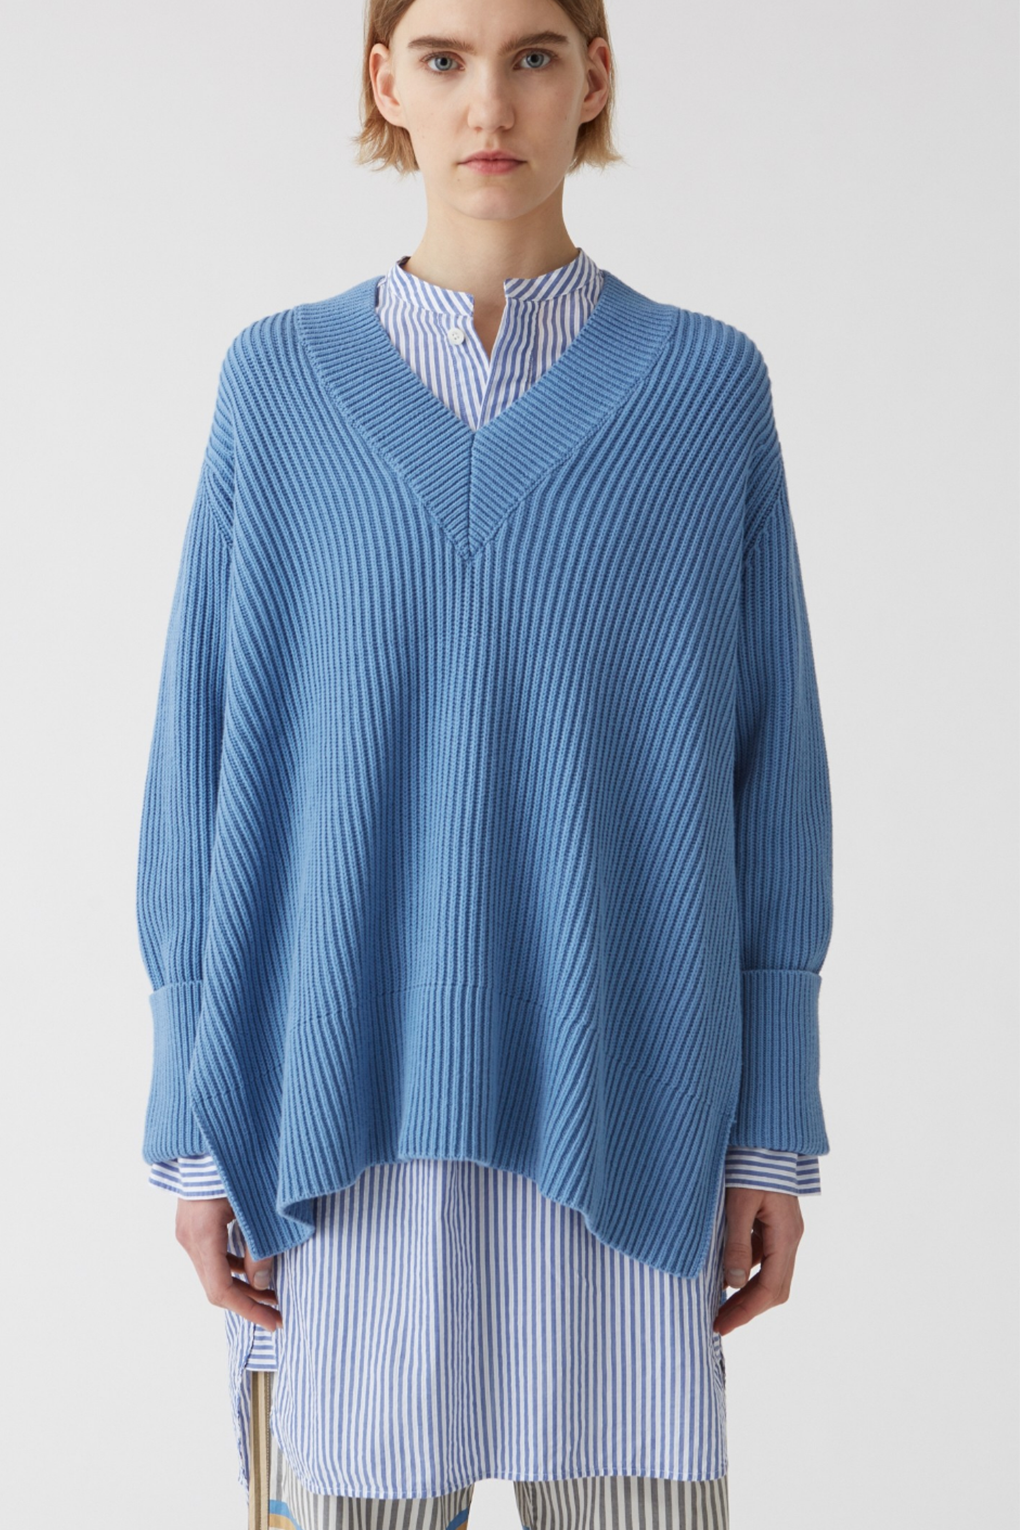 Idun-Saint Paul-Hope Moon Sweater-Blue Sweater